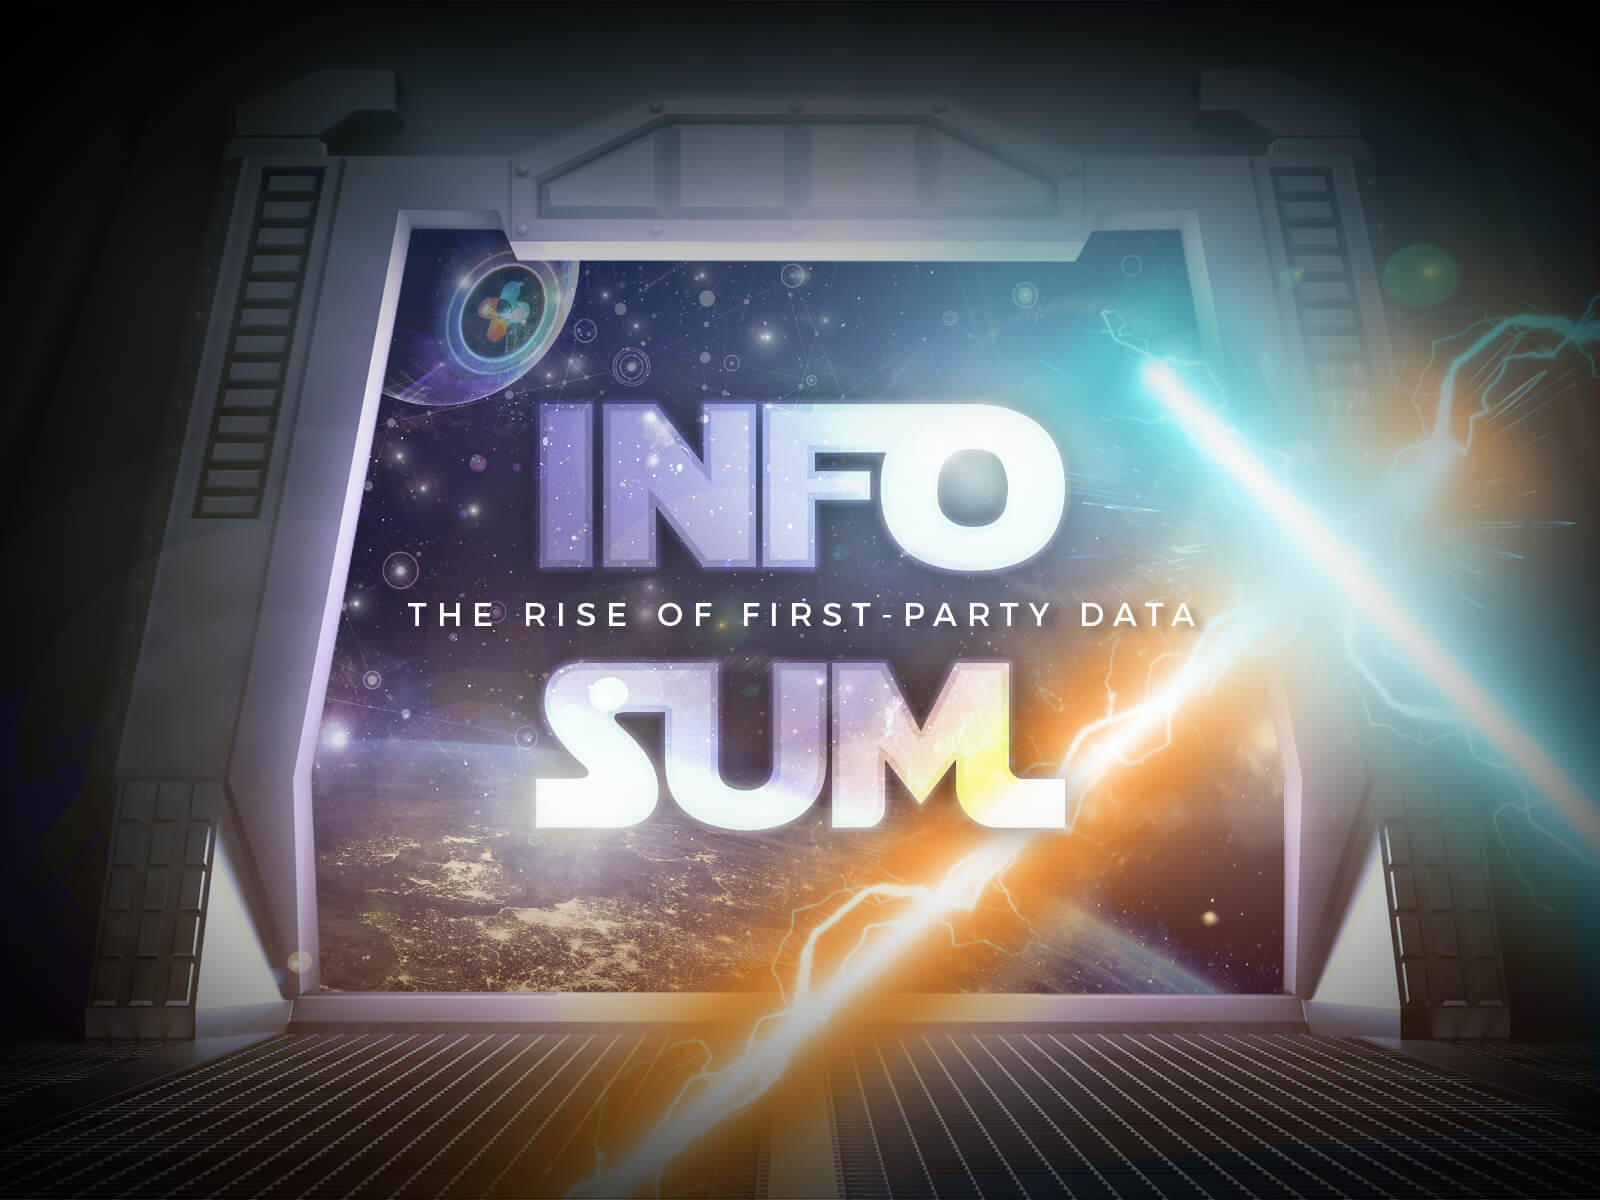 2020 - The rise of first-party data